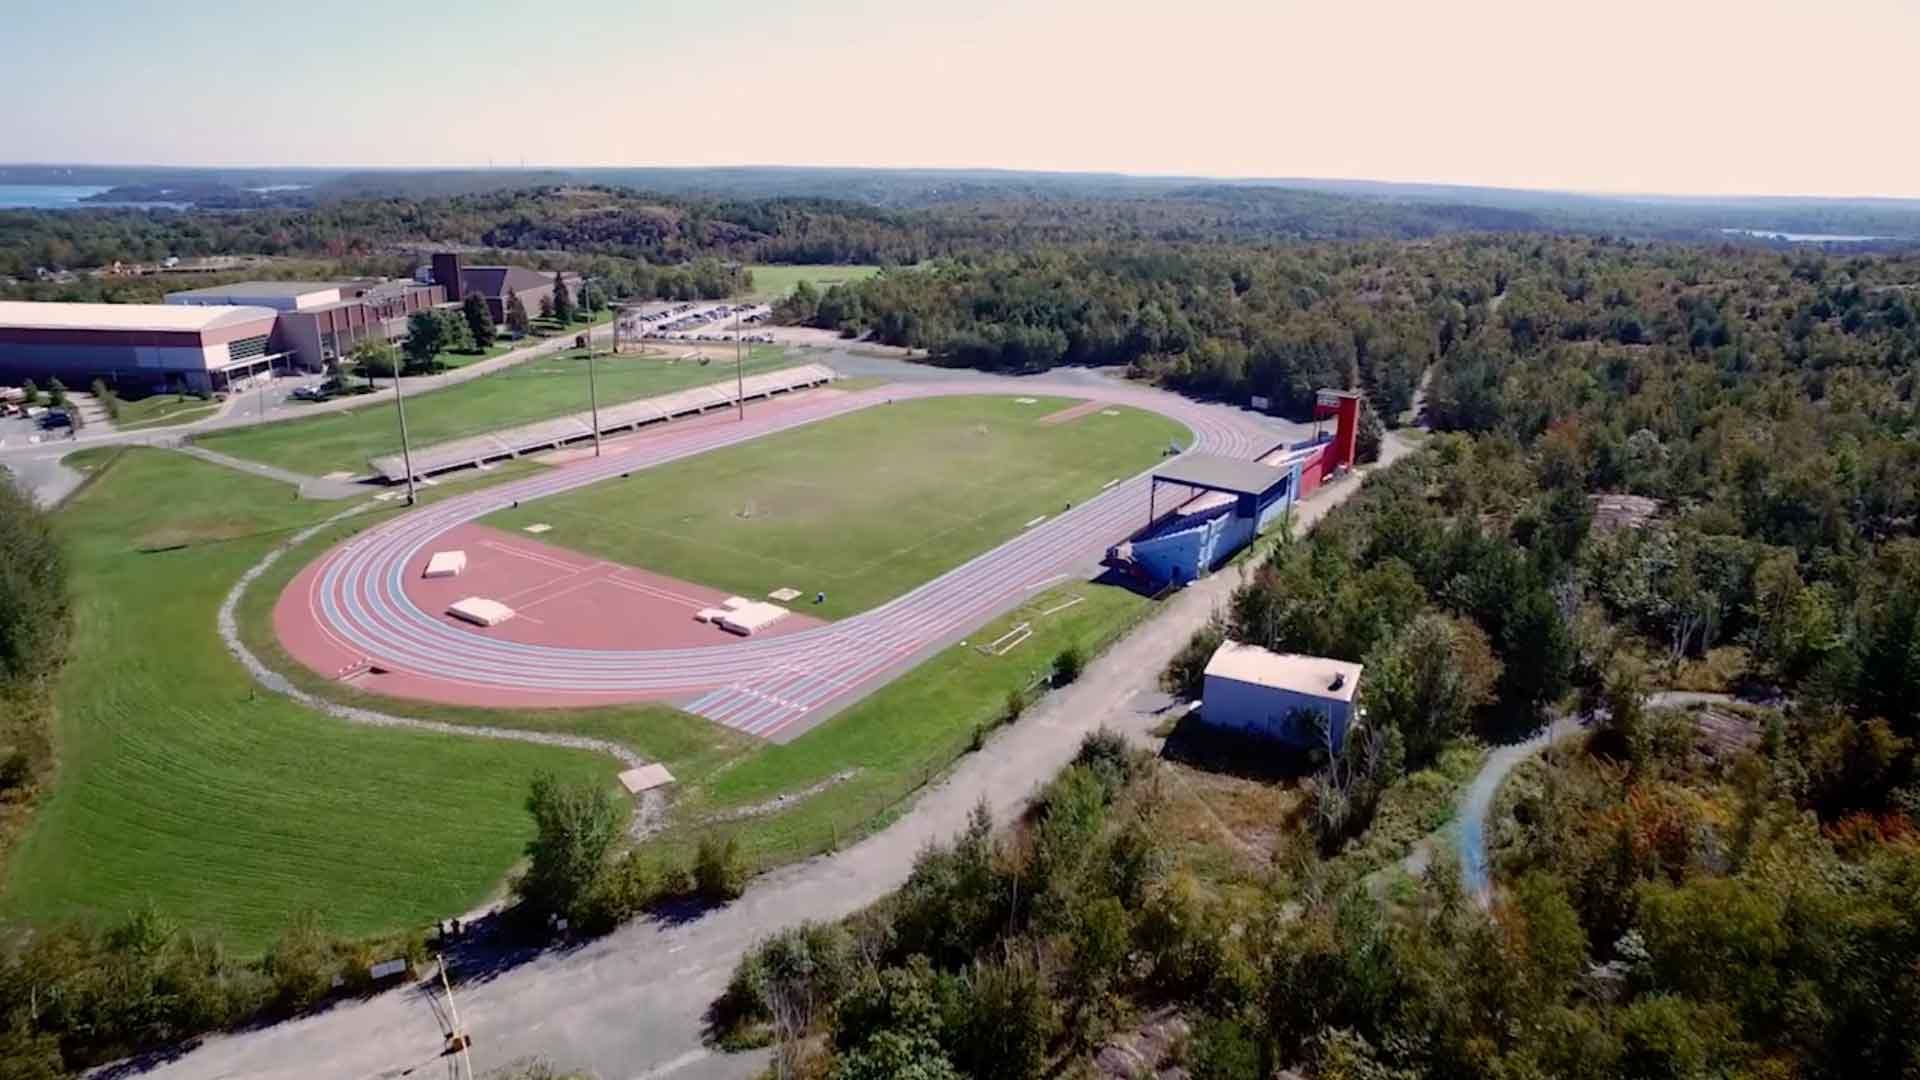 Aerial view of the Laurentian University track